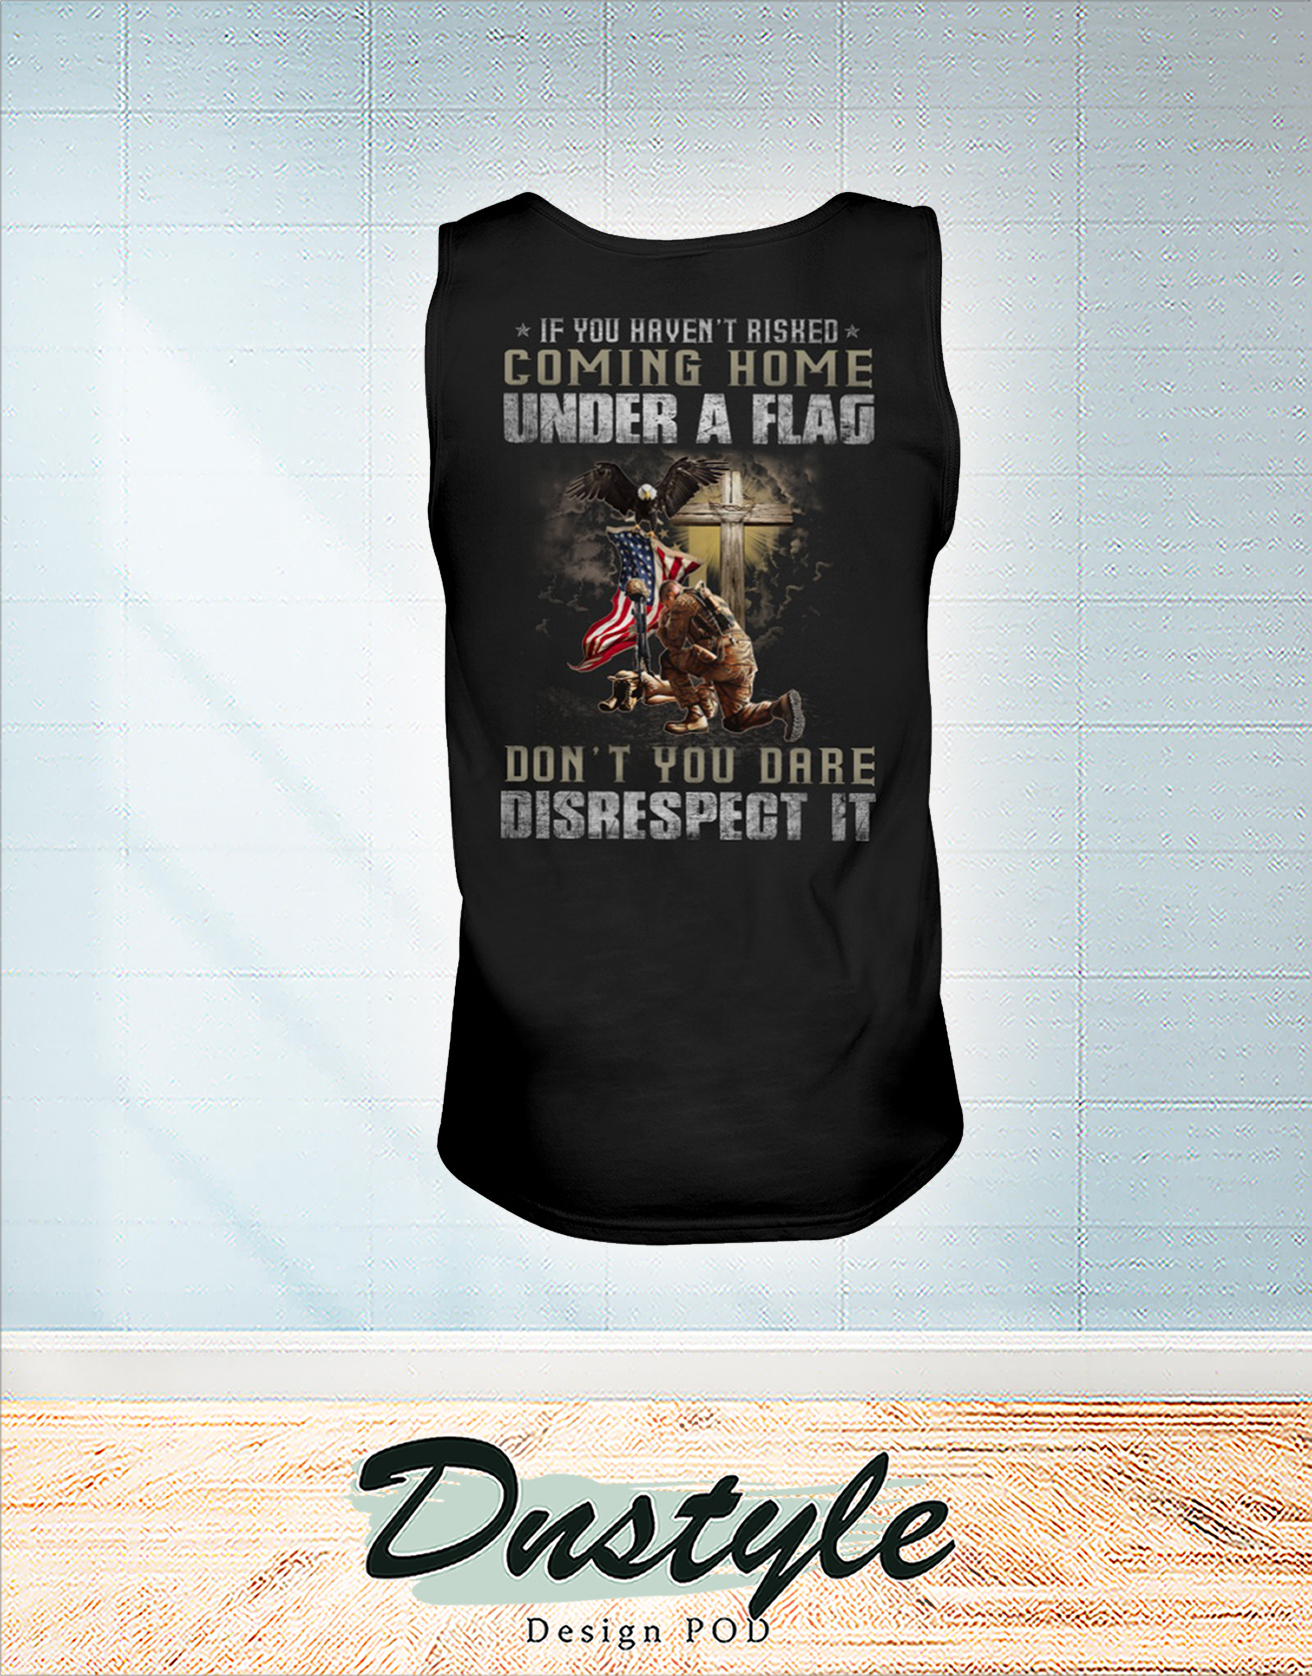 Soldier if you haven't risked coming home under a flag don't you dare disrespect it tank